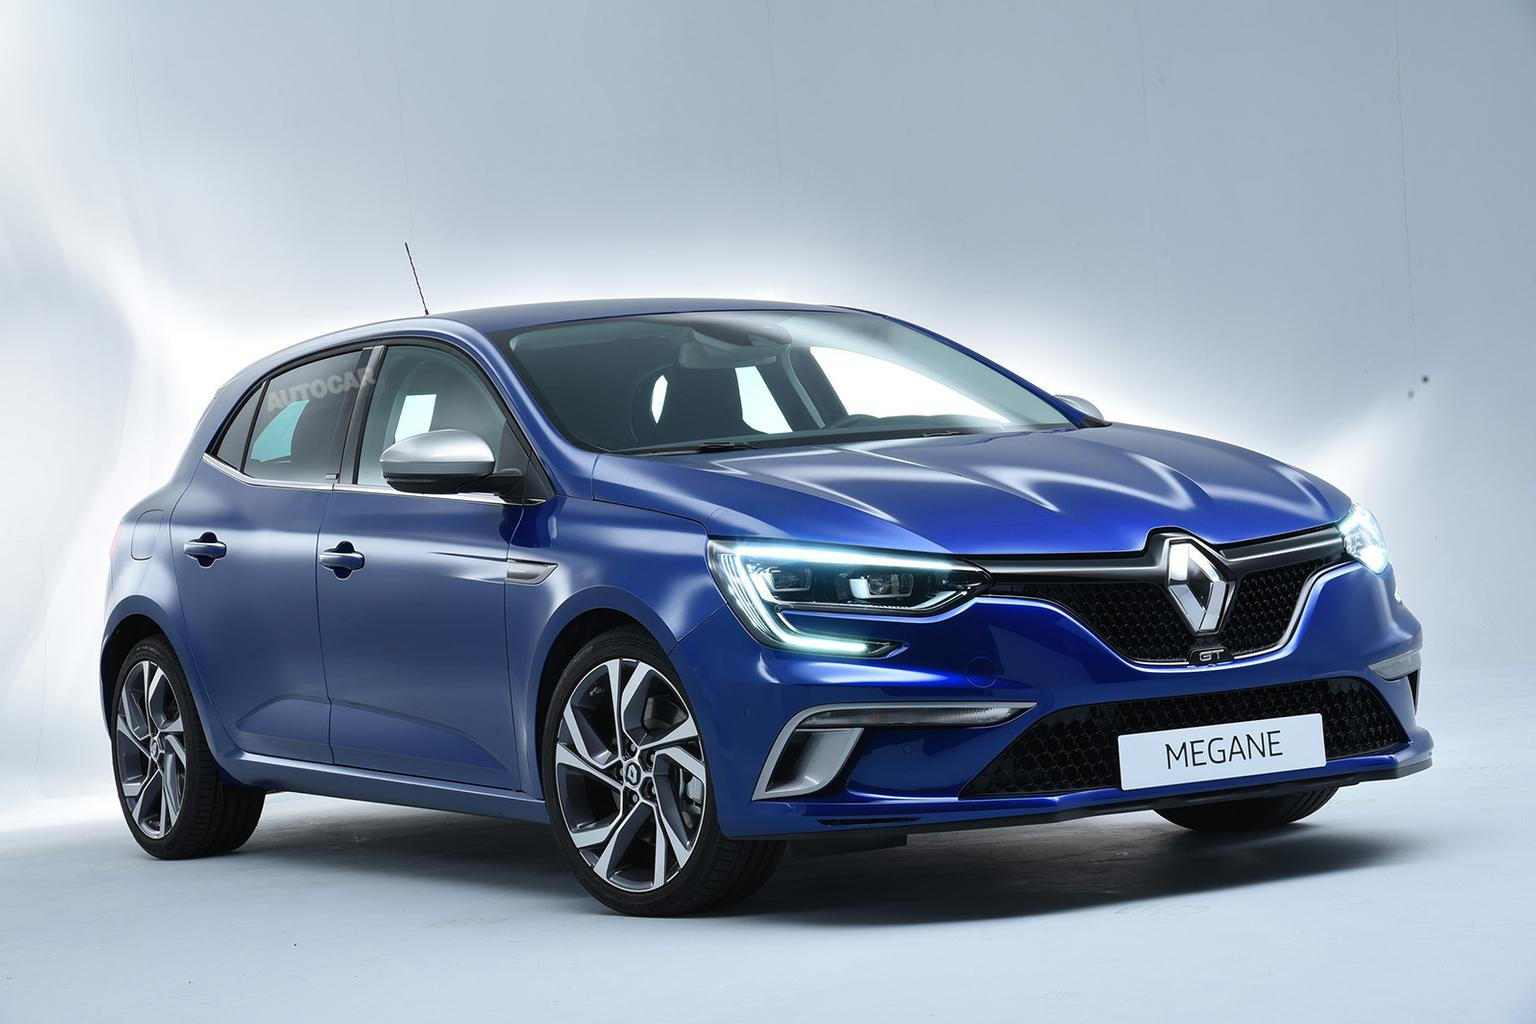 New Renault Megane on sale in July